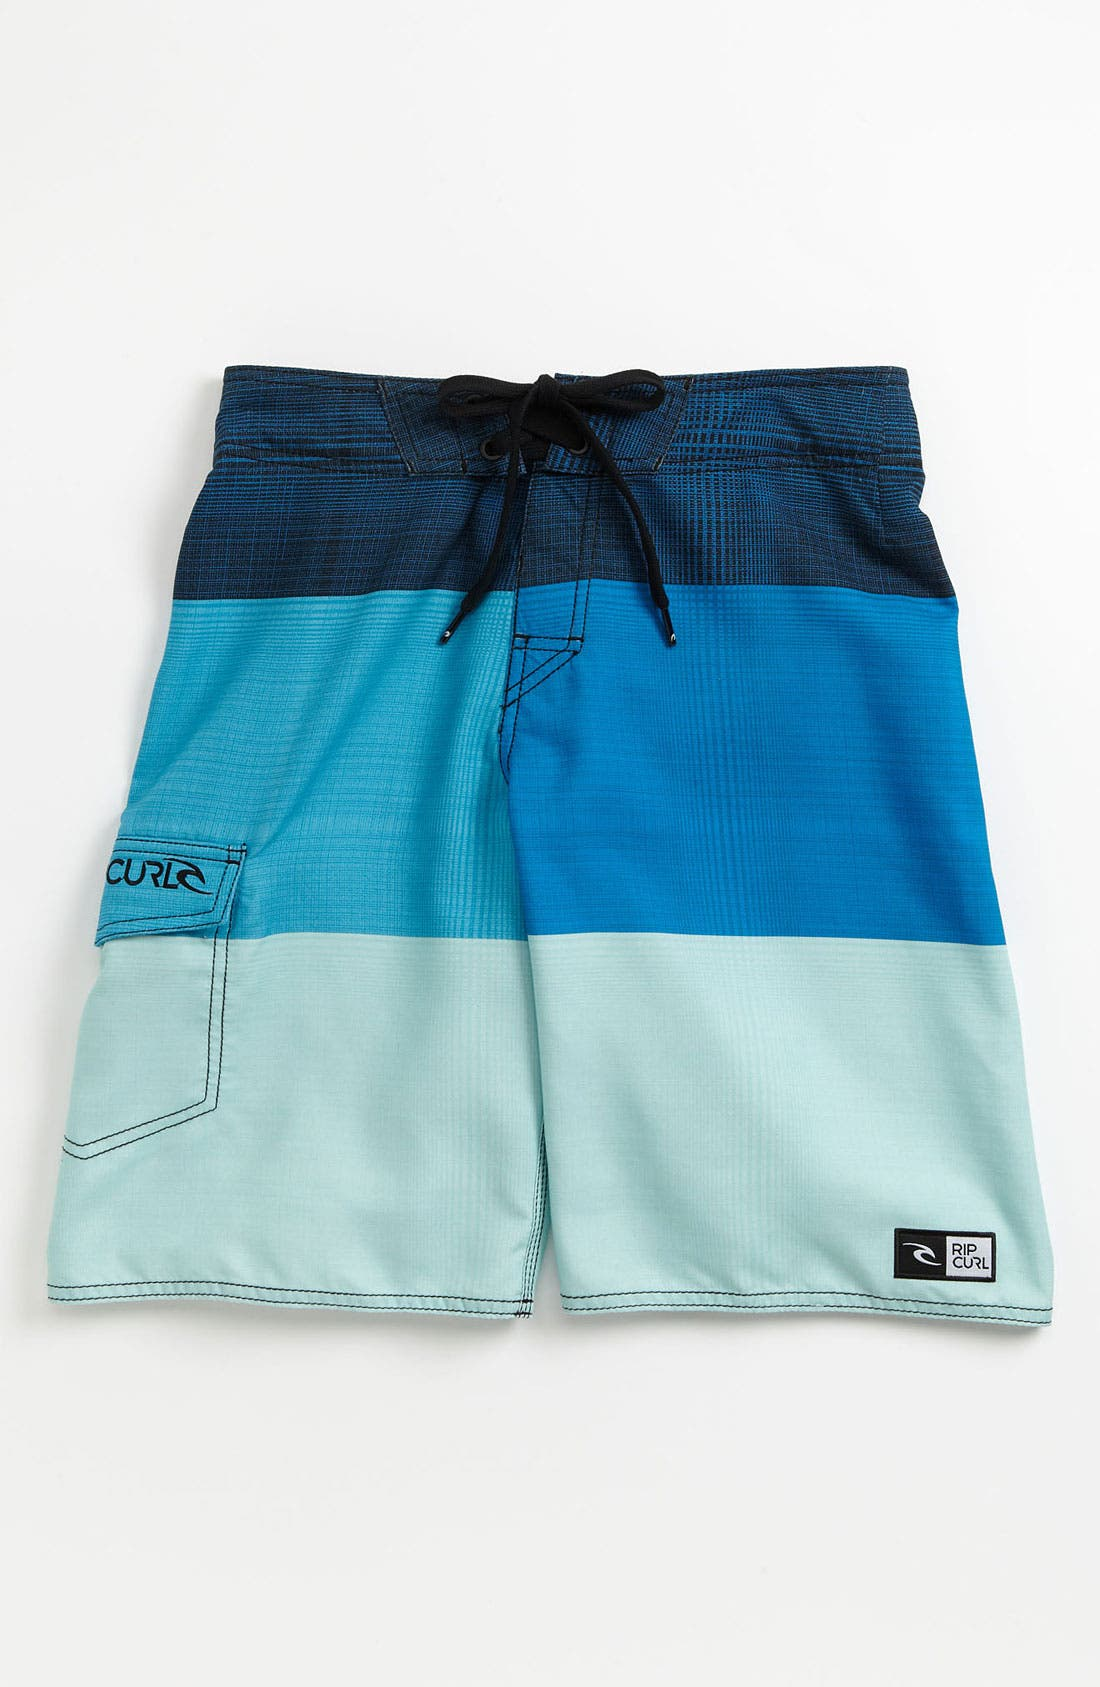 Alternate Image 1 Selected - Rip Curl 'Aggrosection' Board Shorts (Big Boys)